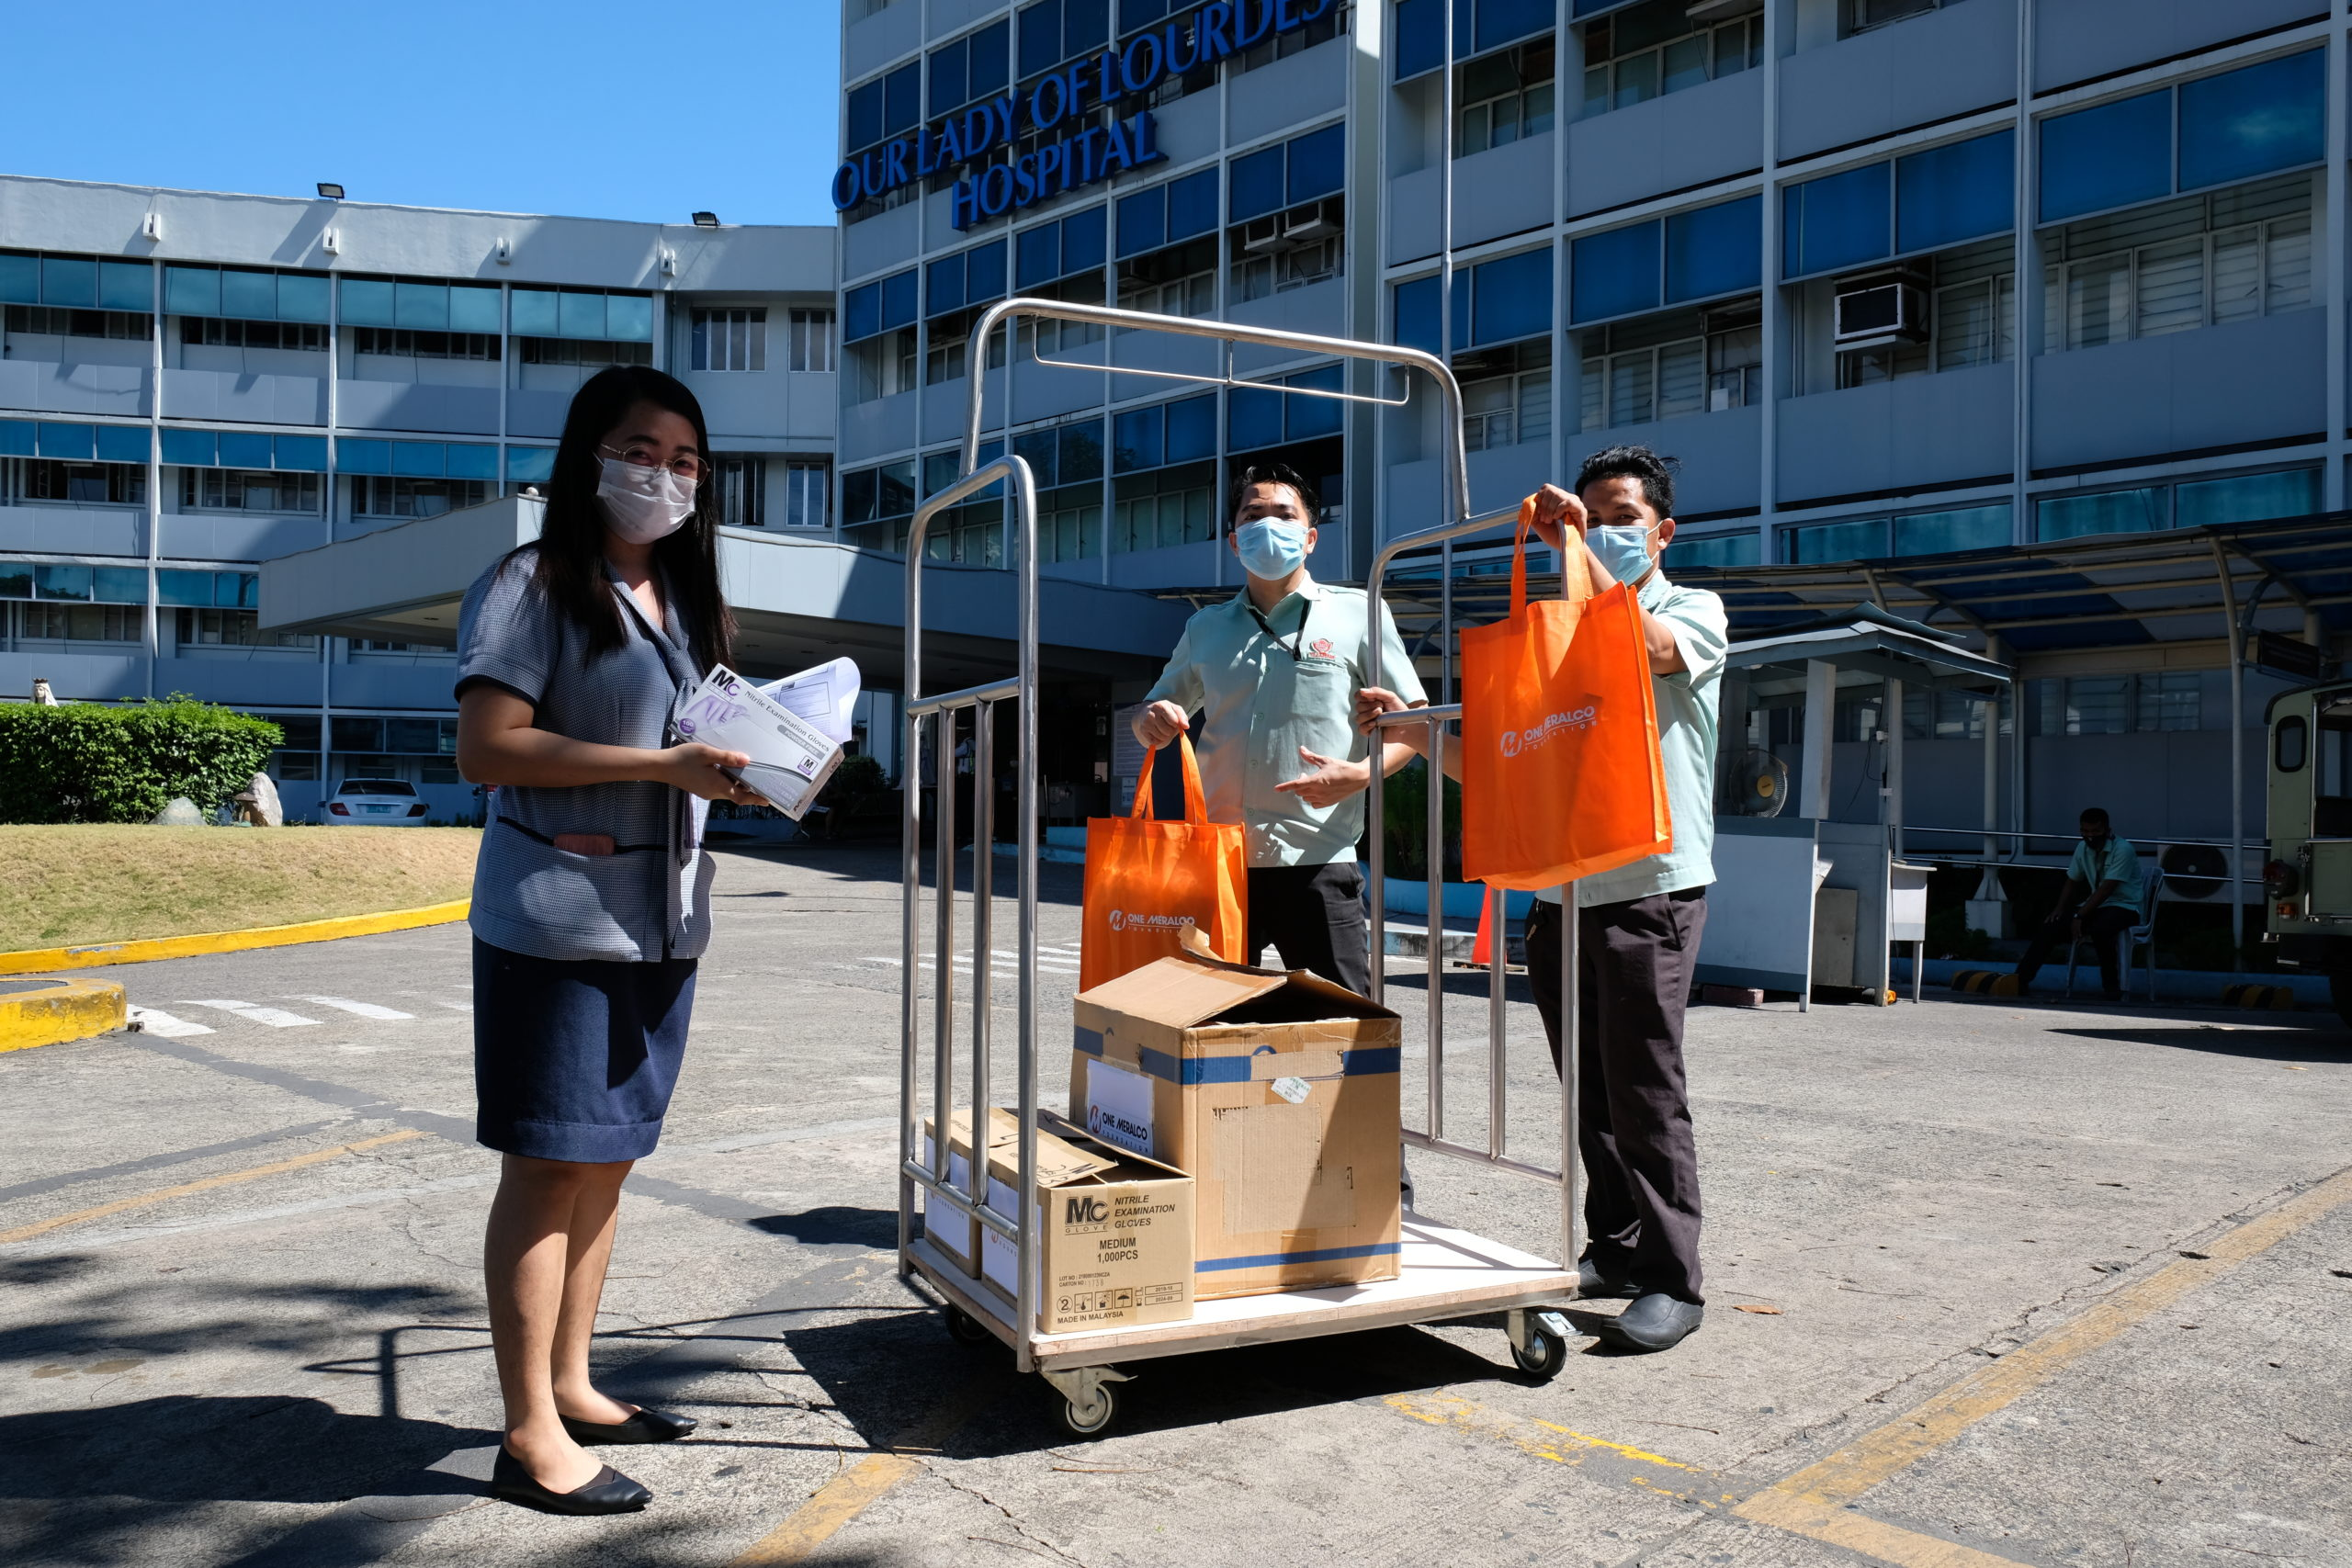 OMF donates face masks and face shields to Our Lady of Lourdes Hospital amid COVID-19 crisis in the Philippines